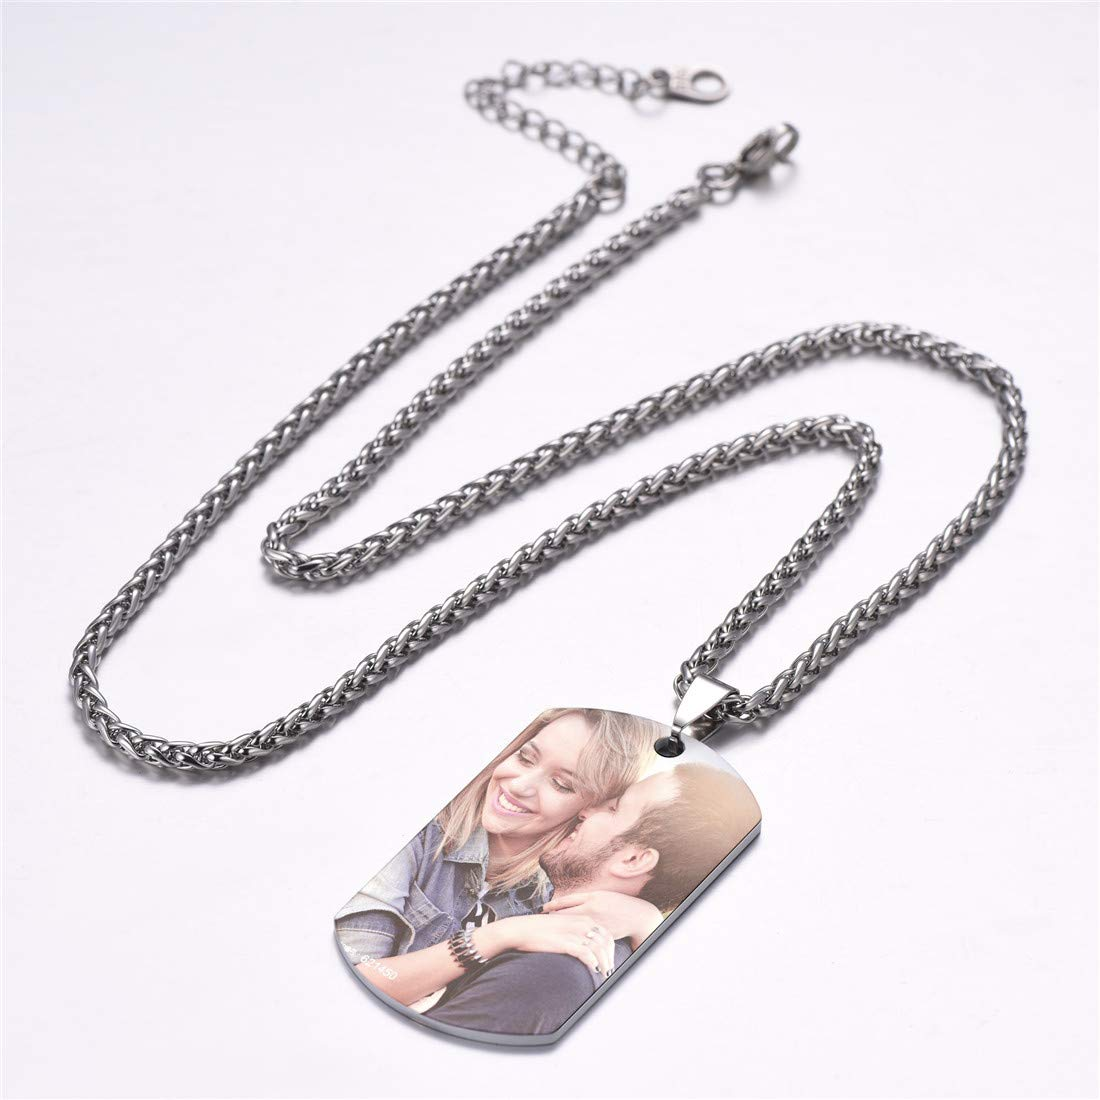 Gift for Men Women U7 Personalized Dog Tags Necklace with Chain Stainless Steel Text//Image Print Photo Custom Engraving Pendant